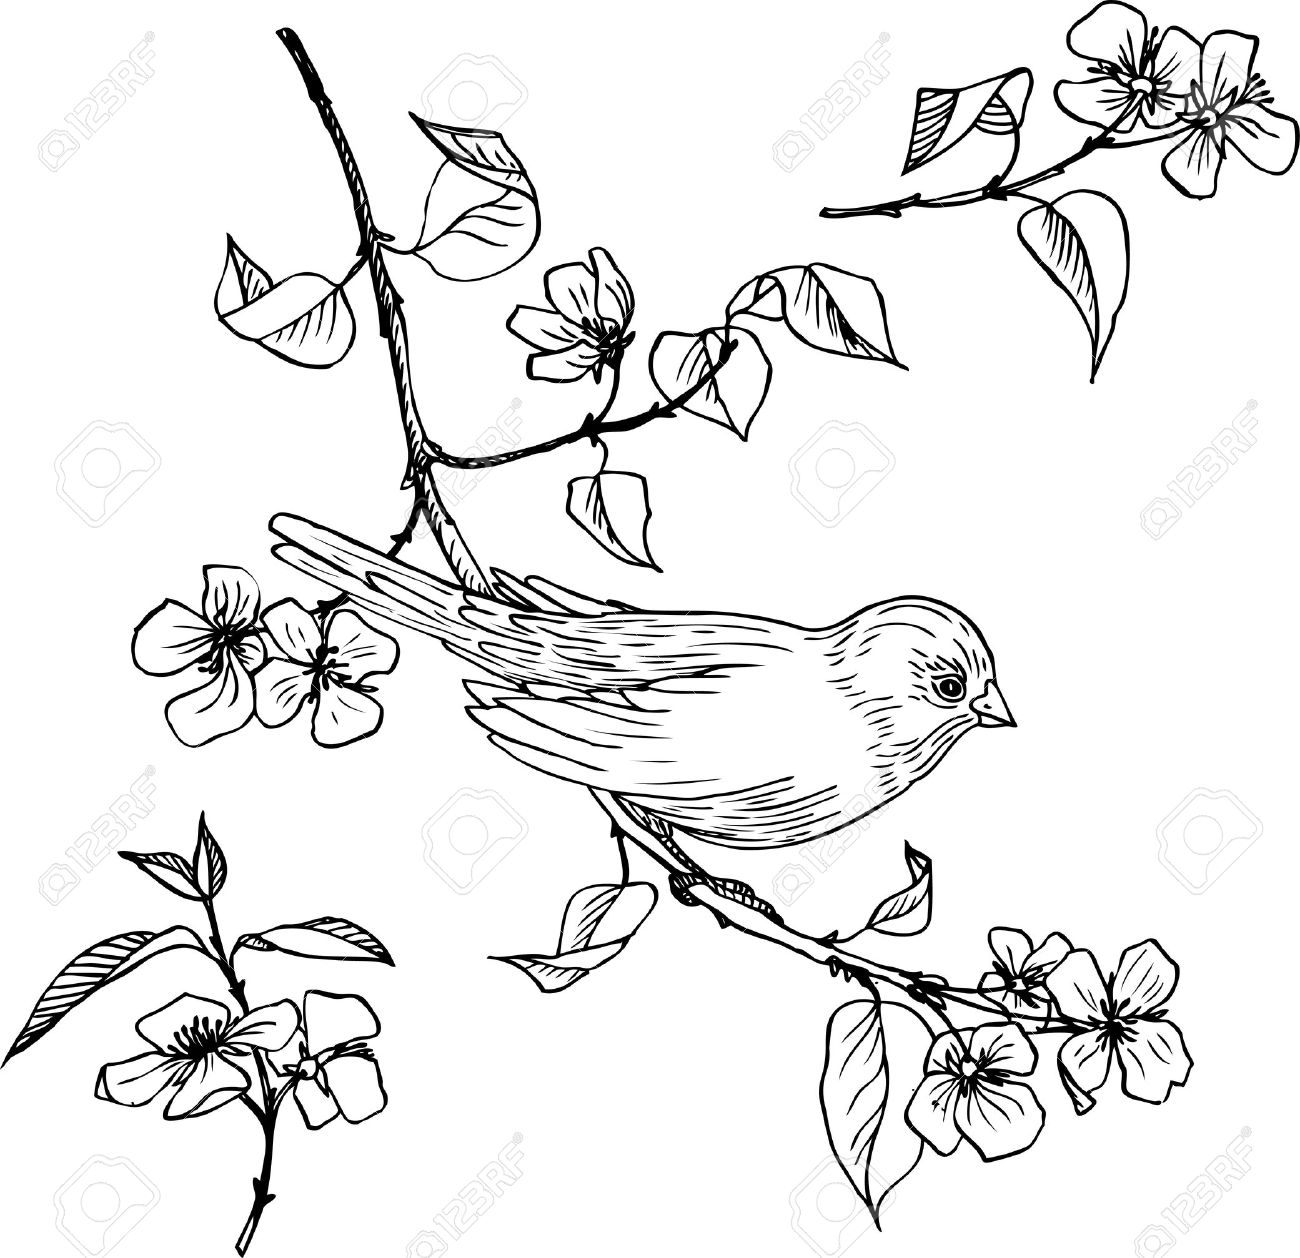 1300x1258 Linear Drawing Bird At Branch With Flowers And Leaves, Set Of Hand